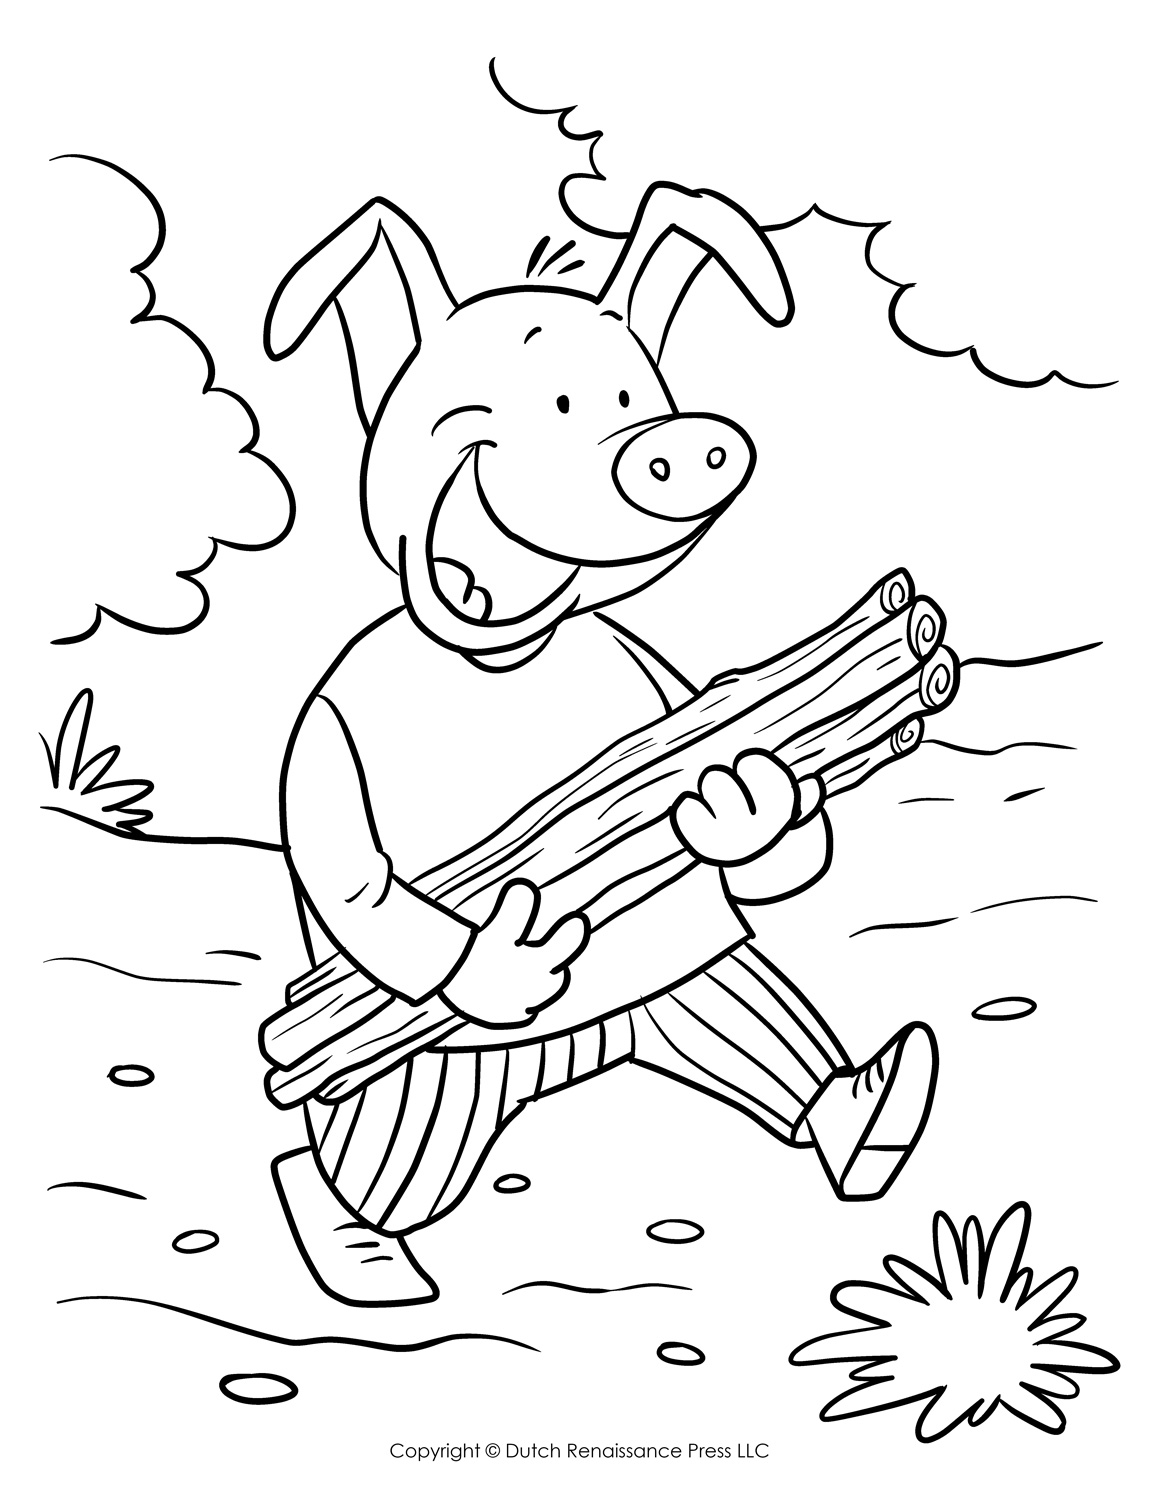 3 little pigs coloring page three little pigs coloring pages for childrens printable little page pigs 3 coloring